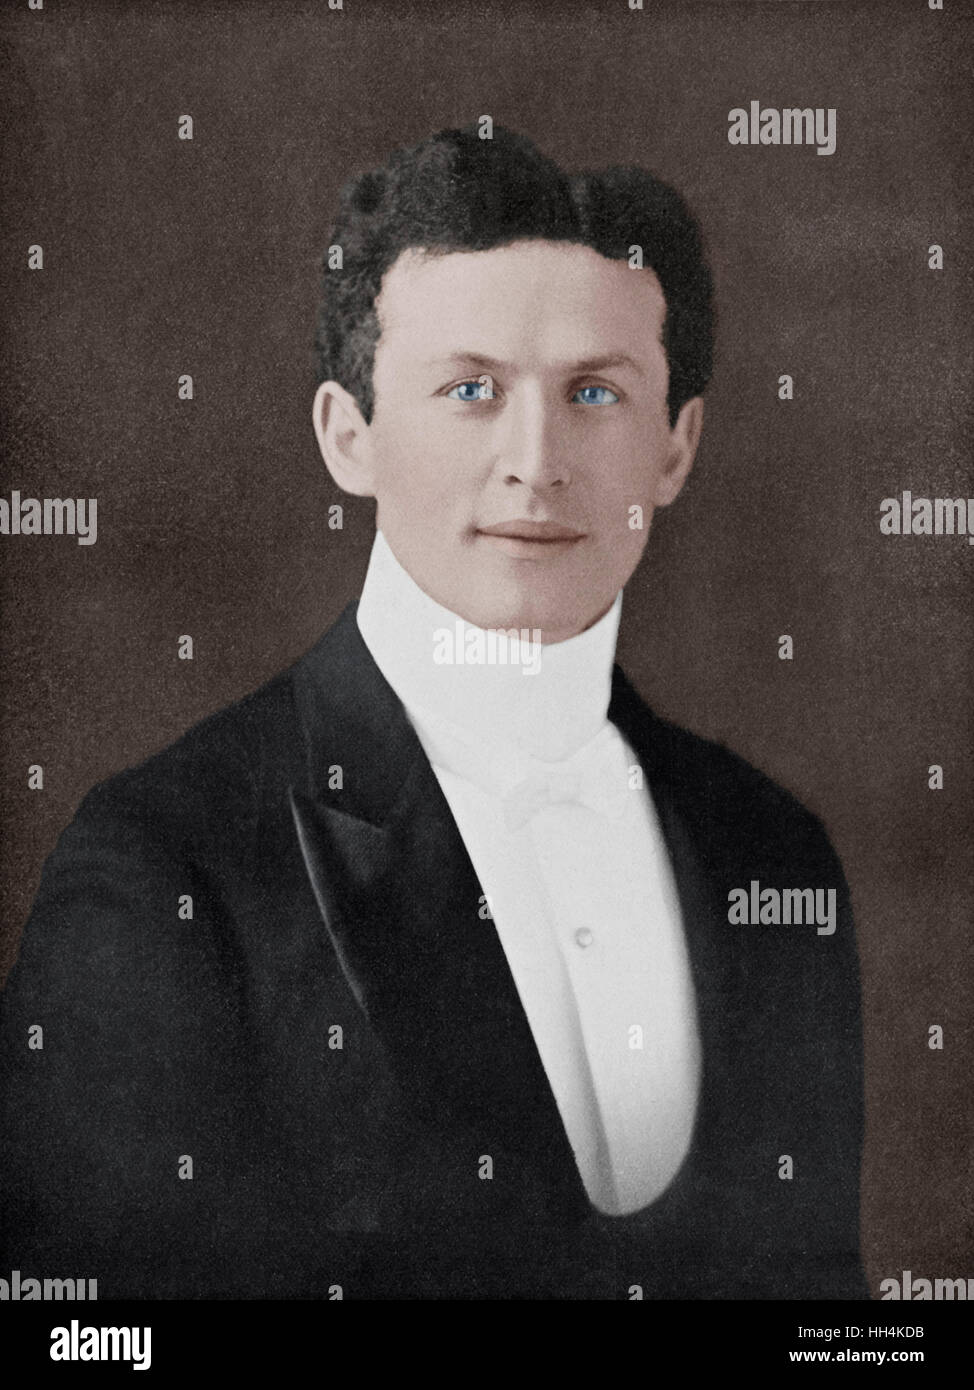 Harry Houdini (1874-1926) - American illusionist and stunt performer, noted for his sensational acts of escapology. - Stock Image